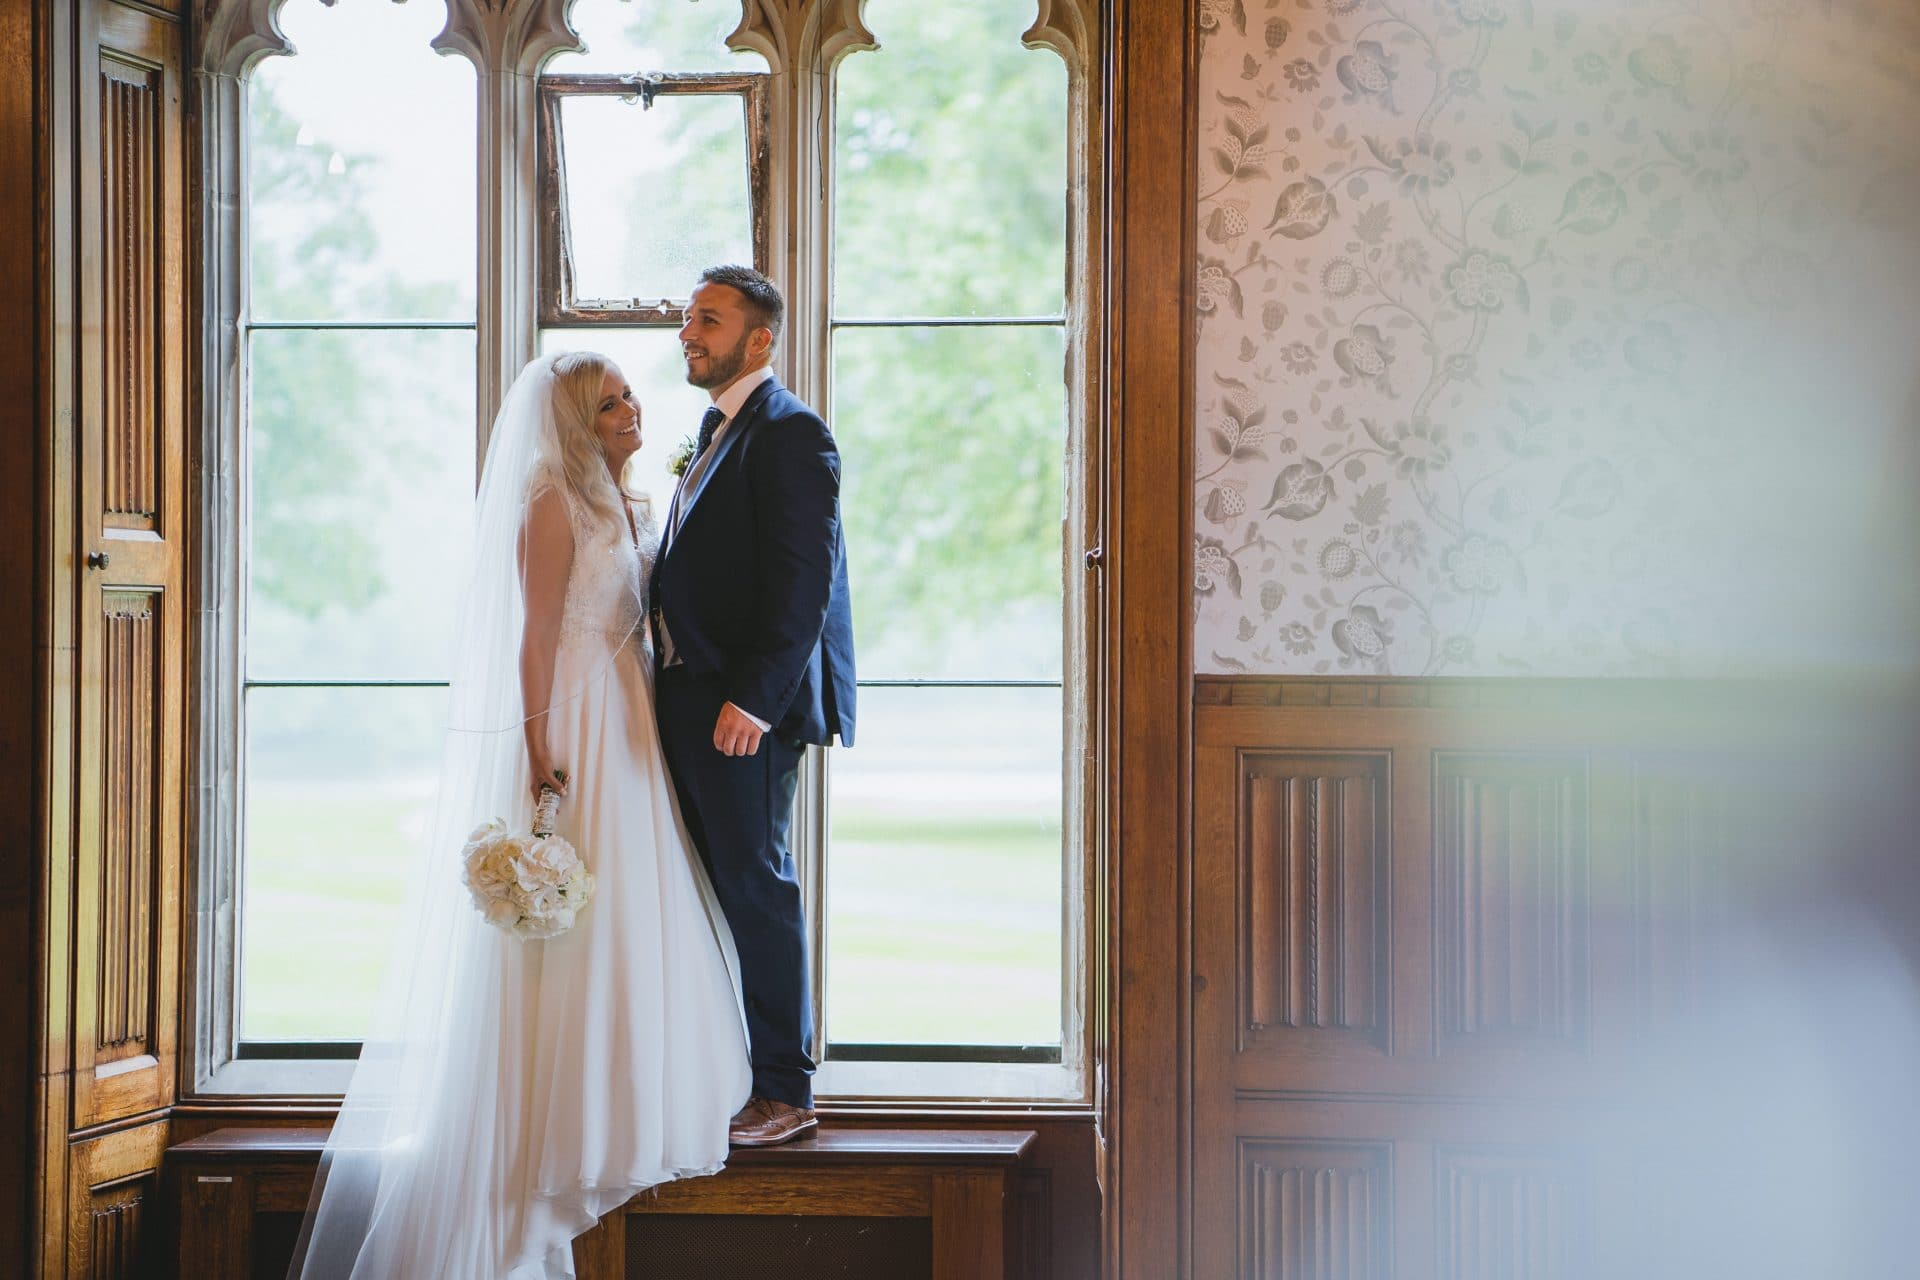 Harriet & Darren at Hensol castle during their wedding photography